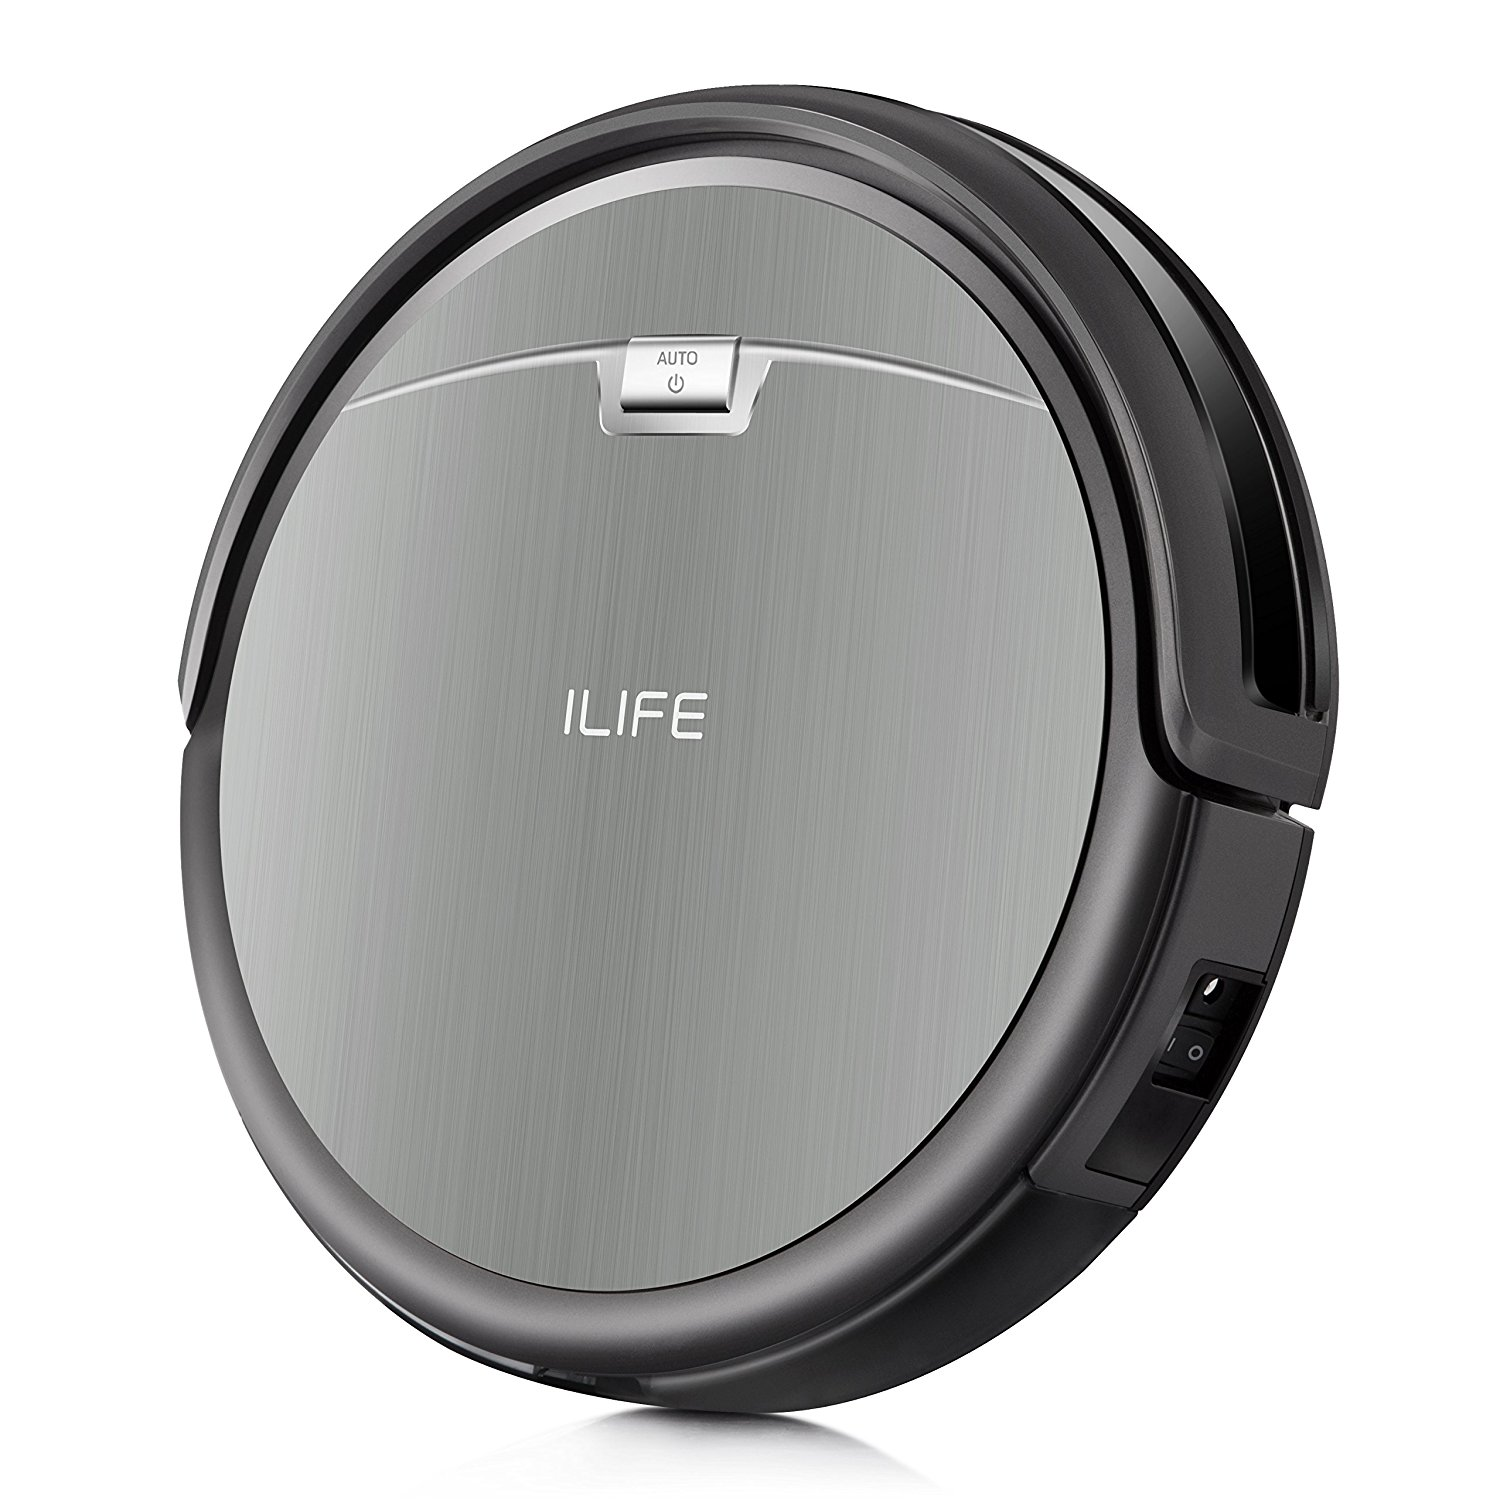 Best Robot Vacuum 5 best robot vacuum for tile floors - guide and reviews